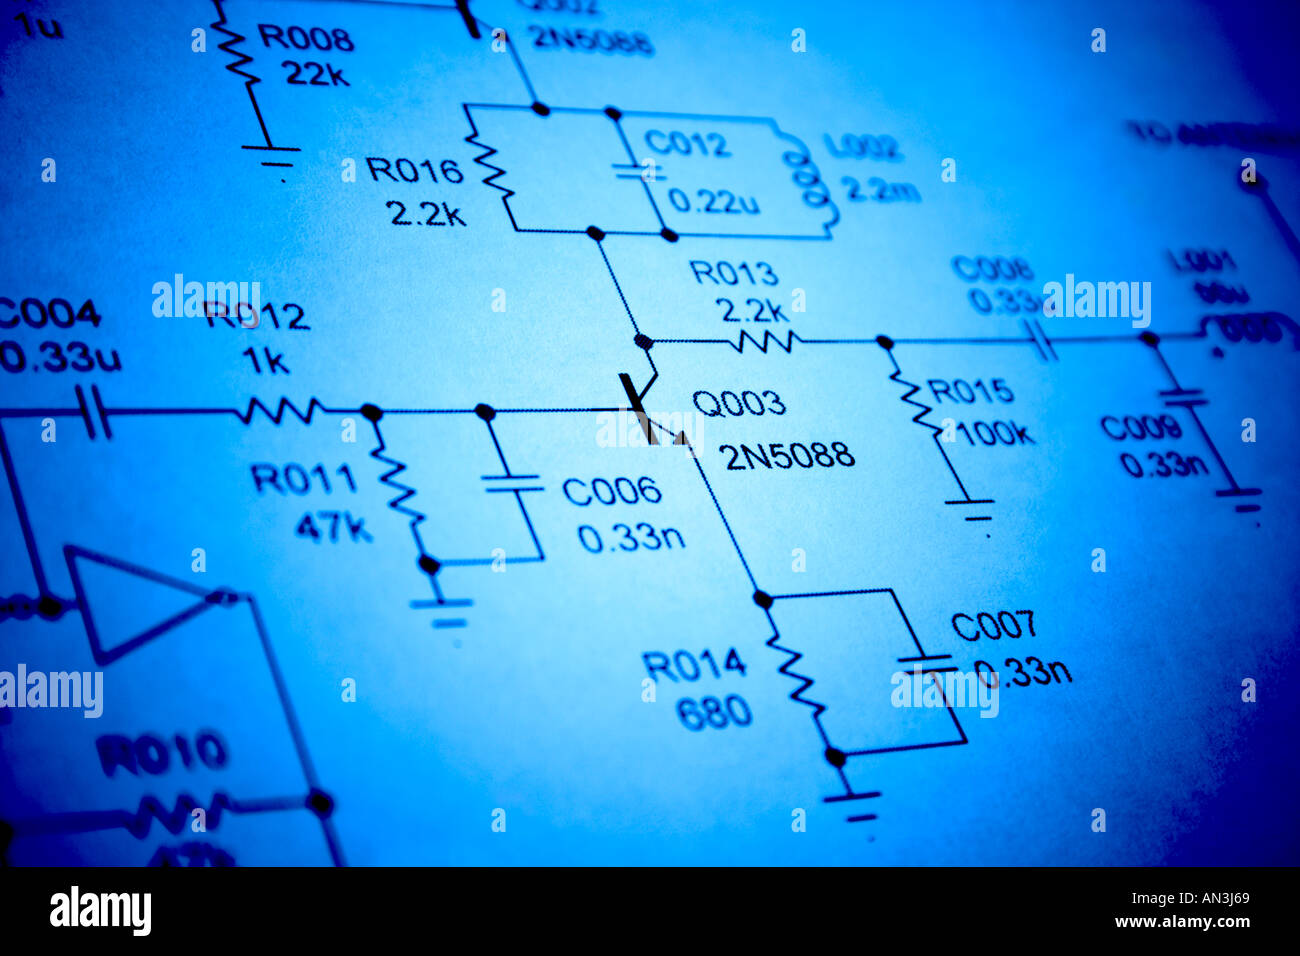 Diagram Electronics Schematic Circuit Stock Photos Electronic Board Diagrams Close Up Of Image